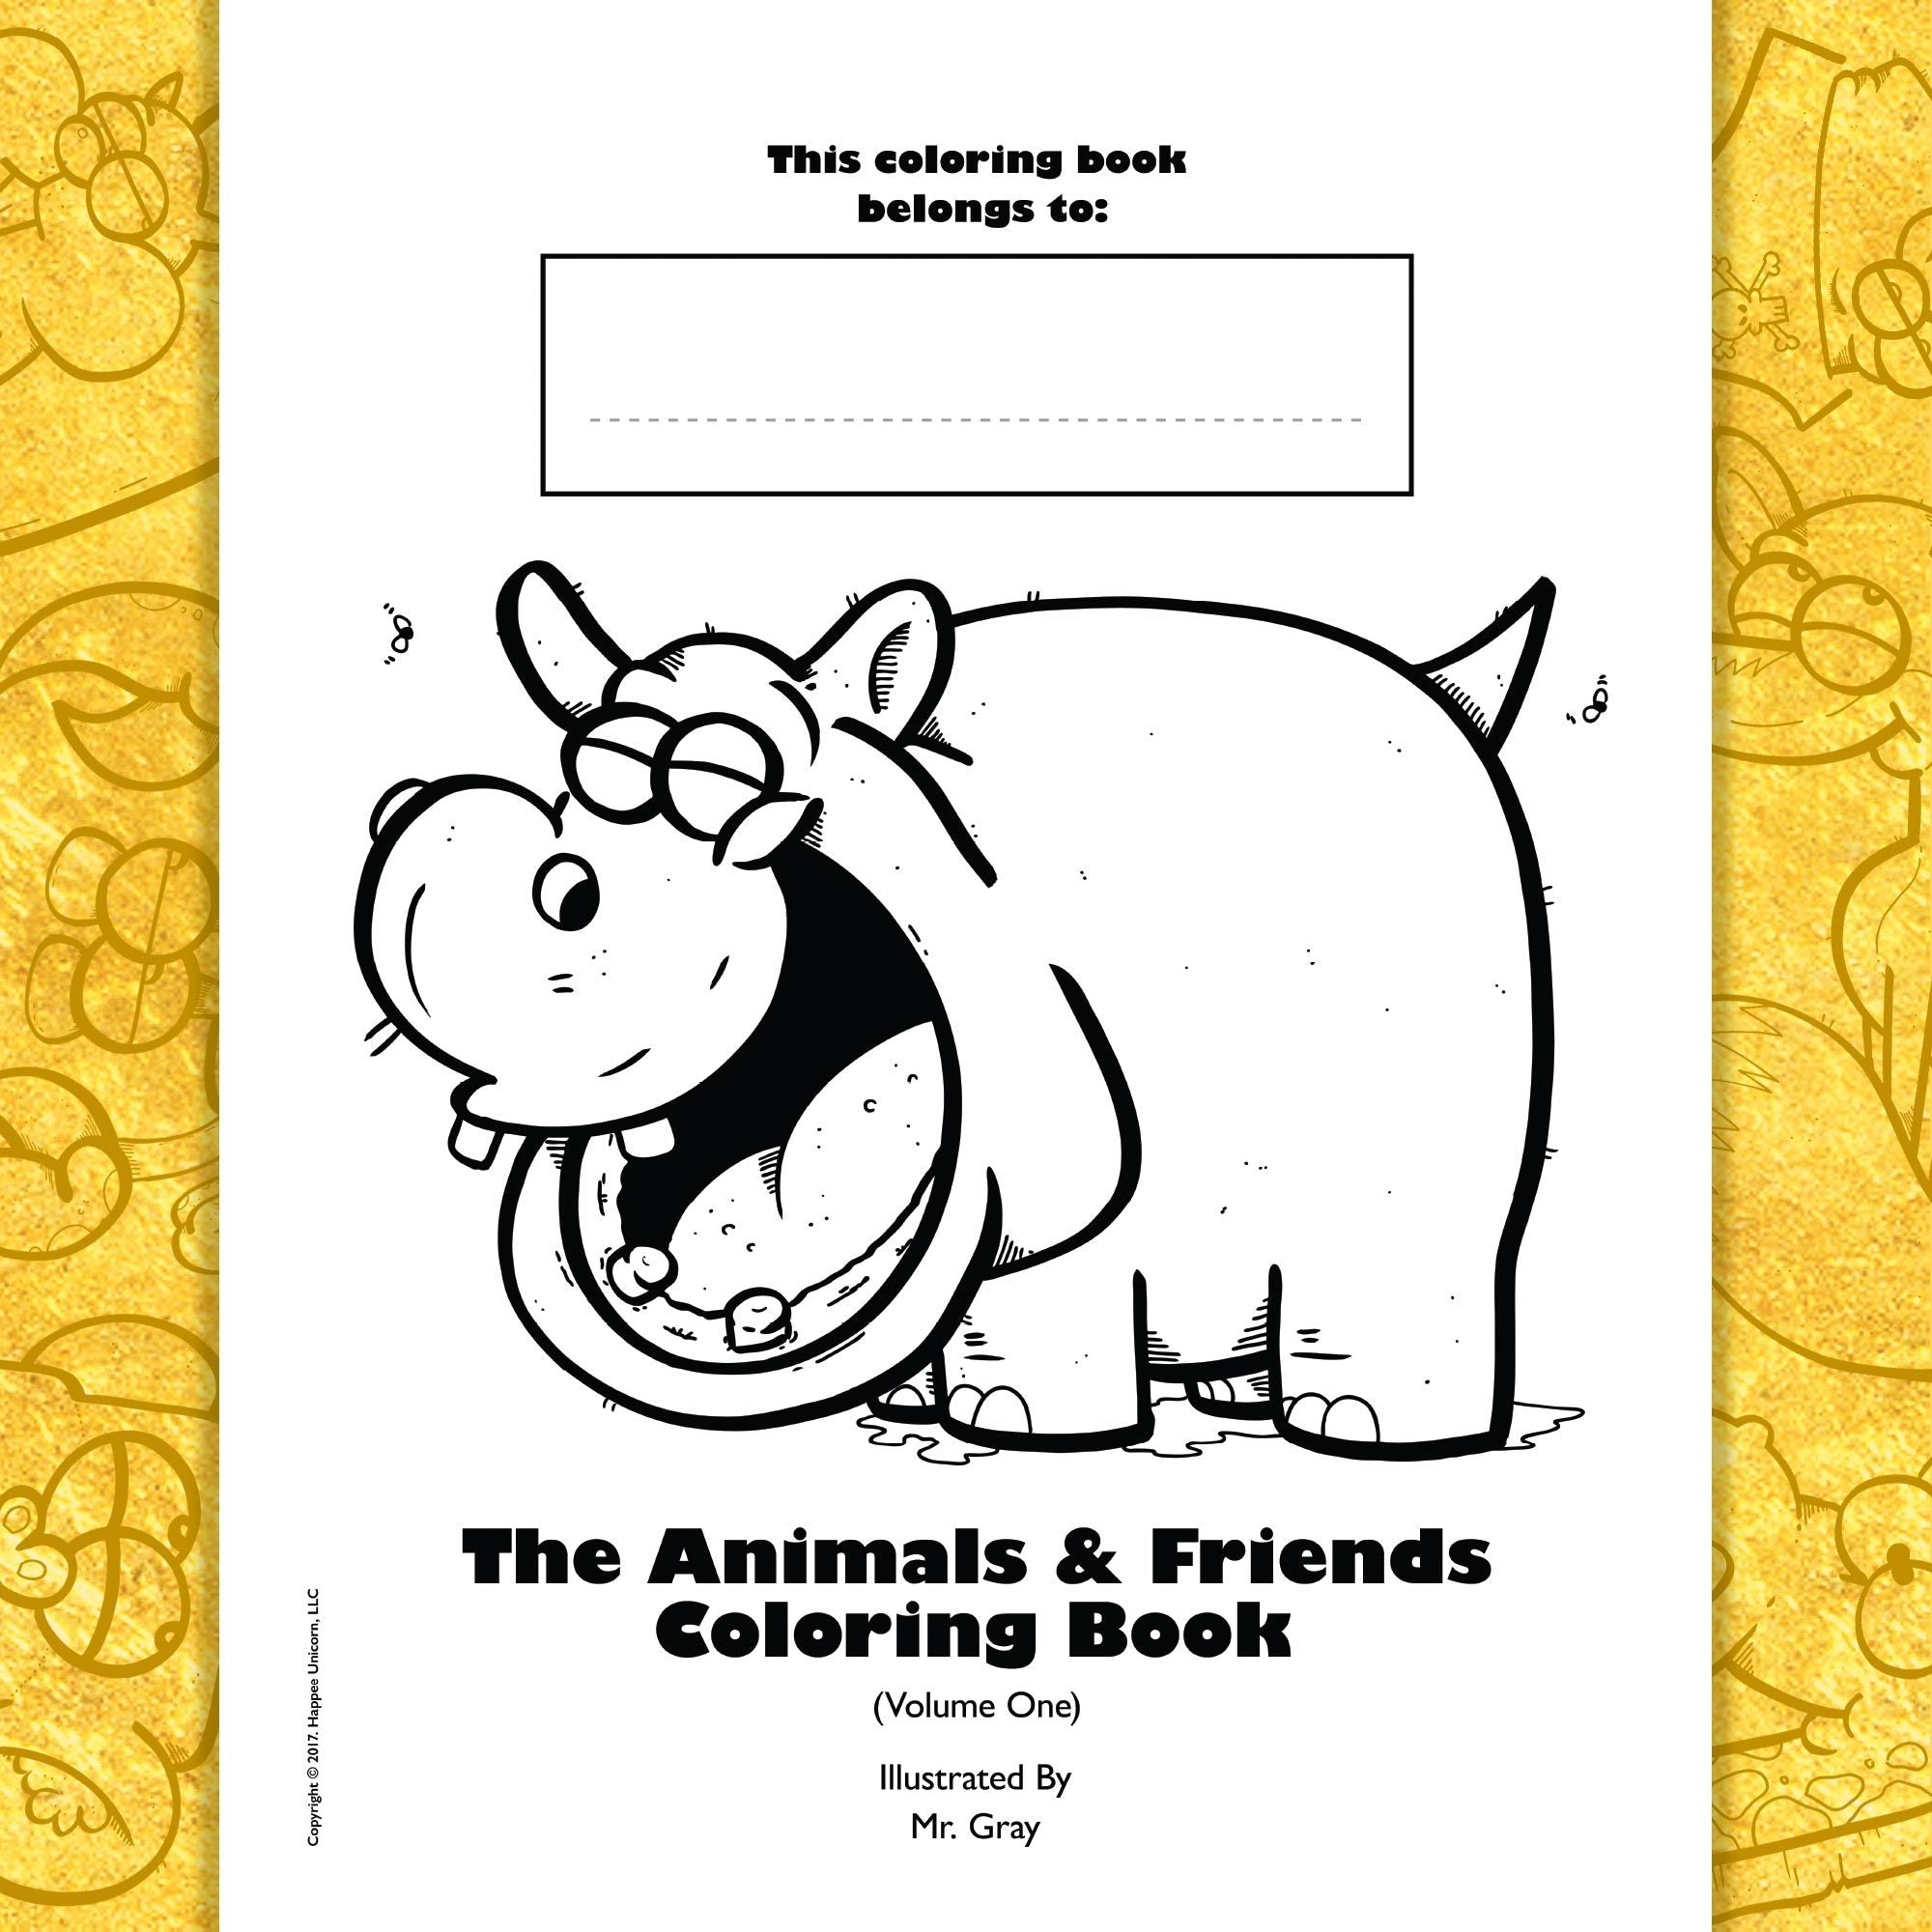 copyright-©-2017-the-animals-and-friends-coloring-book-volume-one-by-mr-gray-look-inside-02